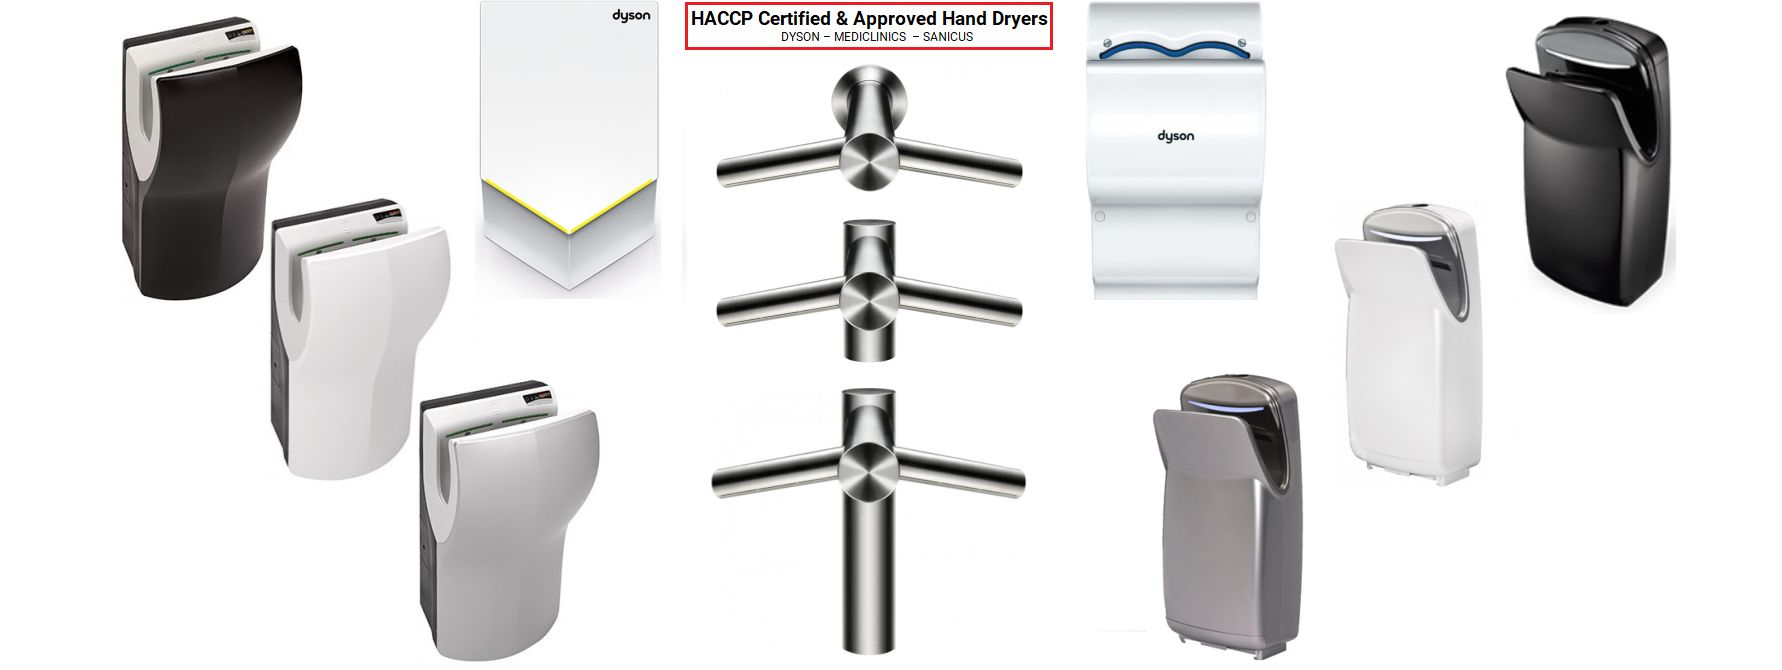 HACCP-Approved-Hand-Dryers